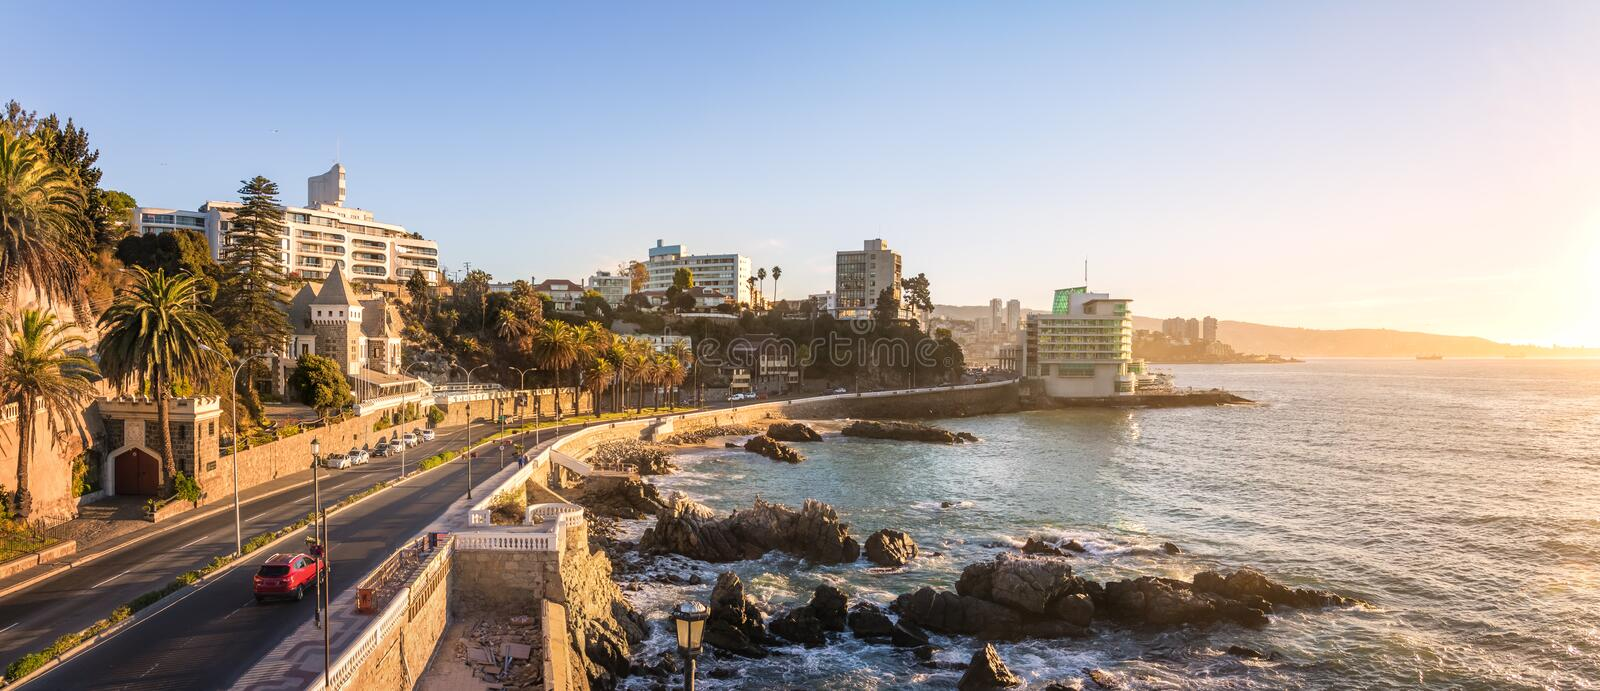 Panoramic aerial view of Vina del Mar skyline at sunset - Vina del Mar, Chile royalty free stock image